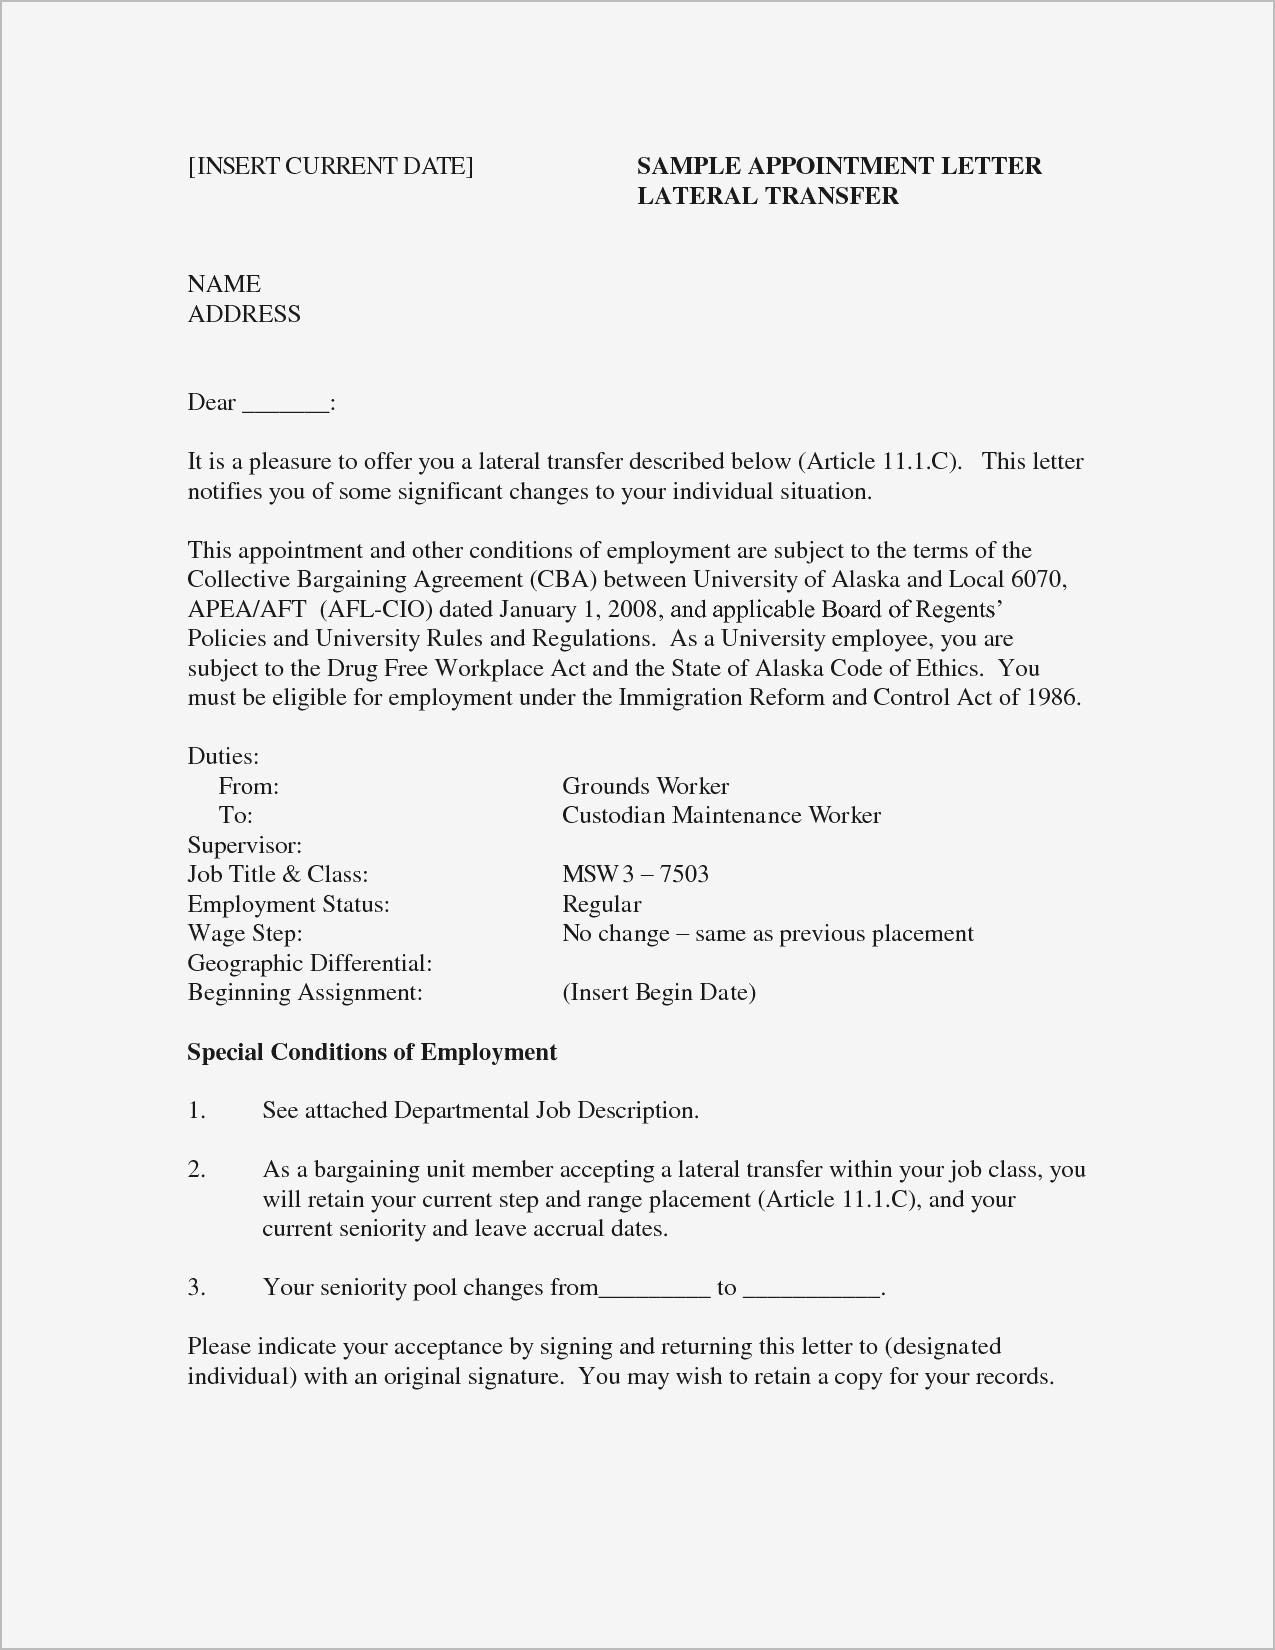 Offer Of Employment Letter Template Free - Basic Resume Template Free Samples